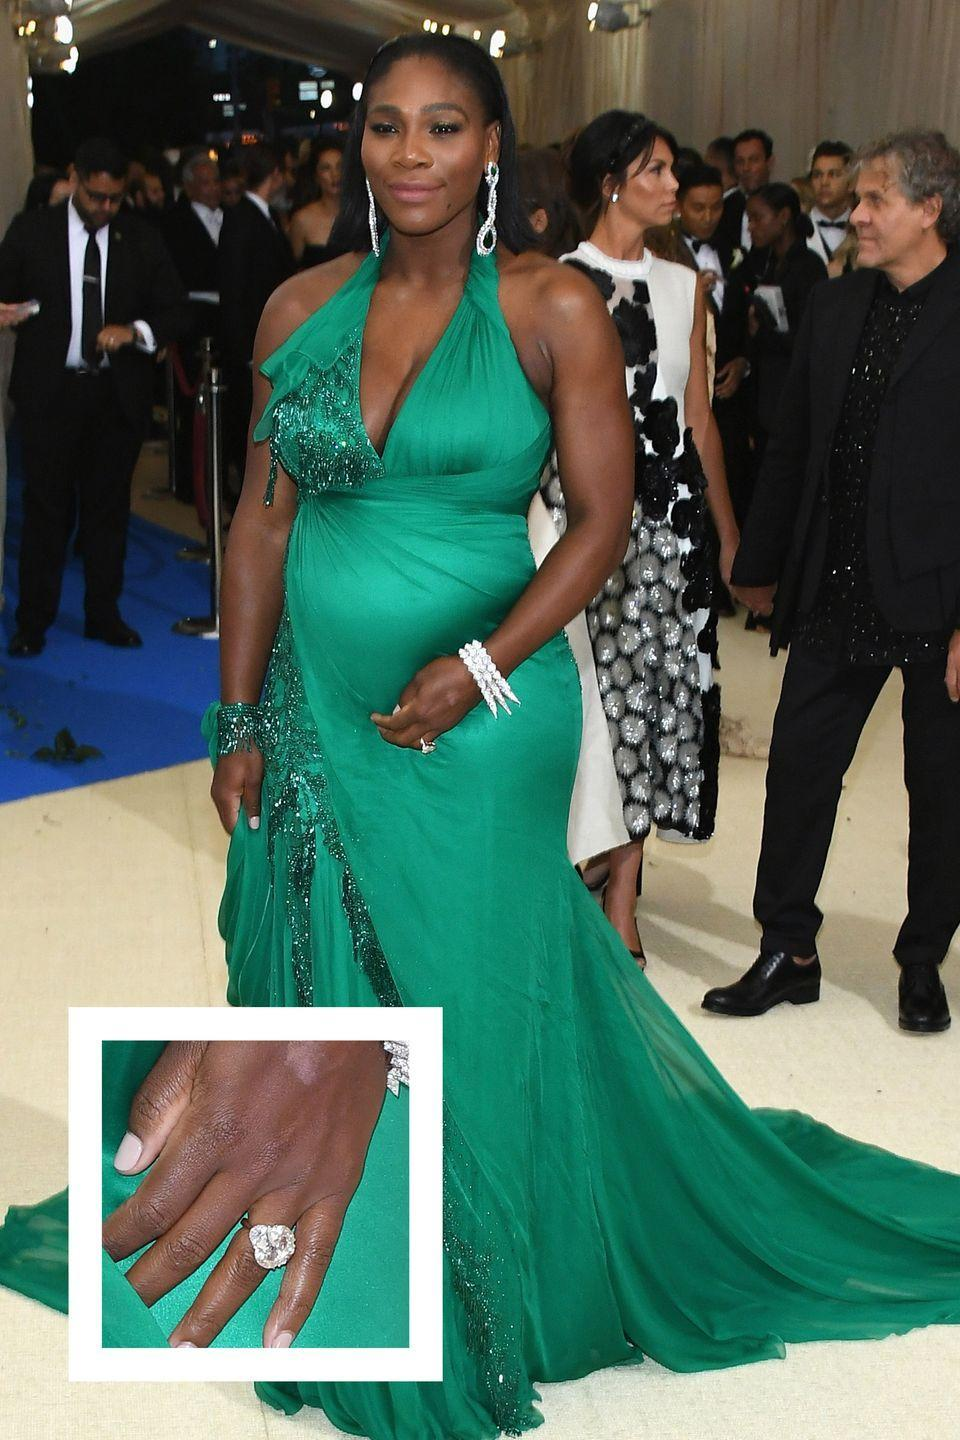 """<p><a href=""""https://www.townandcountrymag.com/leisure/sporting/news/g1332/serena-williams-facts/"""" rel=""""nofollow noopener"""" target=""""_blank"""" data-ylk=""""slk:The tennis star"""" class=""""link rapid-noclick-resp"""">The tennis star</a> announced her engagement to Reddit co-founder Alexis Ohanian in late December 2016, and debuted her sparkler just a few weeks later. The massive emerald-cut diamond is estimate to be over 10-carats, <a href=""""http://www.businessinsider.com/serena-williams-engagement-ring-reddit-2017-1"""" rel=""""nofollow noopener"""" target=""""_blank"""" data-ylk=""""slk:Business Insider reports."""" class=""""link rapid-noclick-resp""""><em>Business Insider </em>reports.</a></p>"""